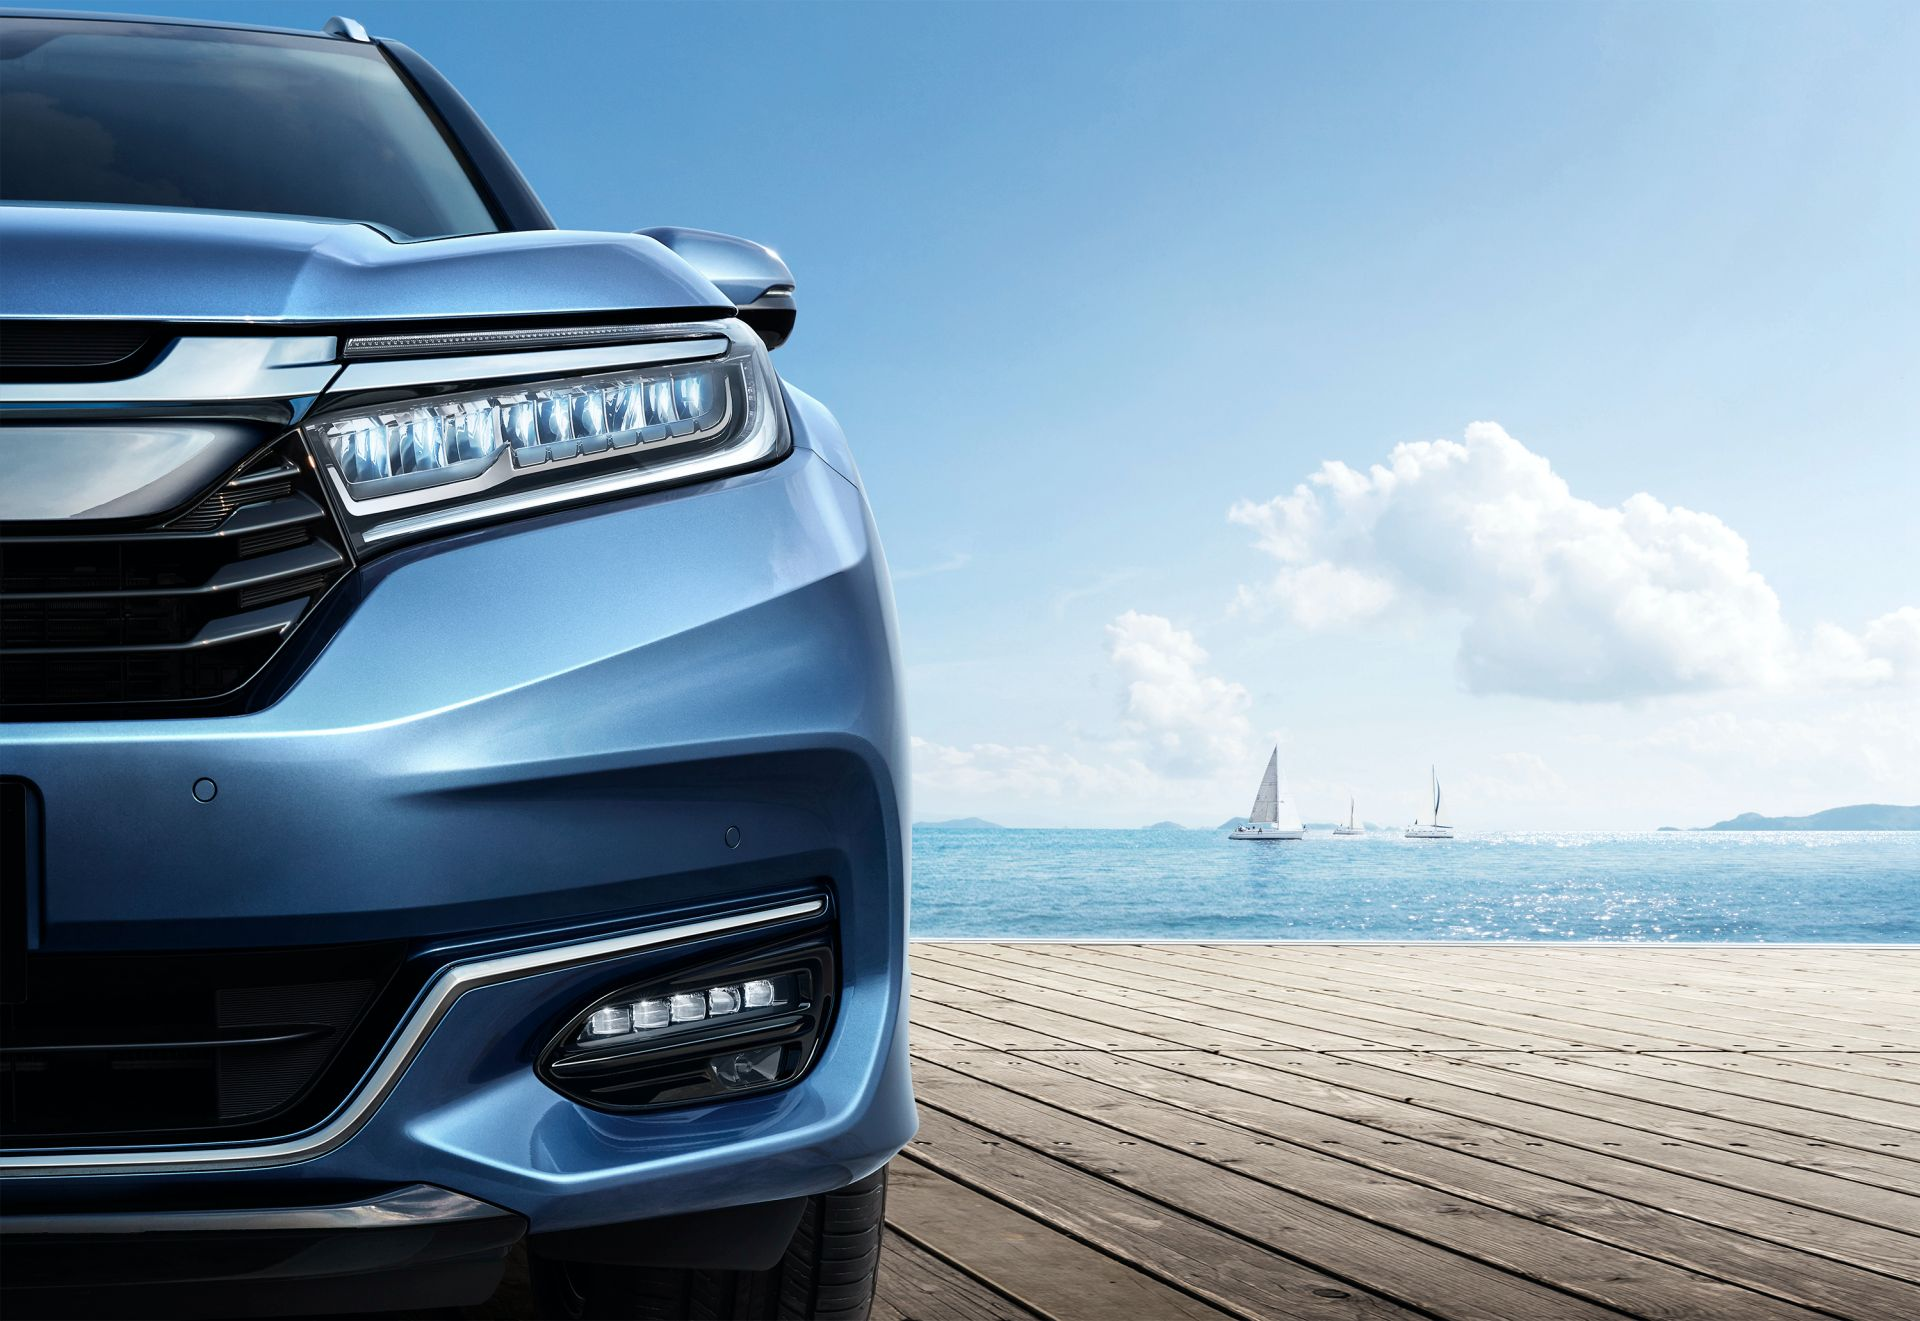 Honda-Avancier-facelift-2020-15